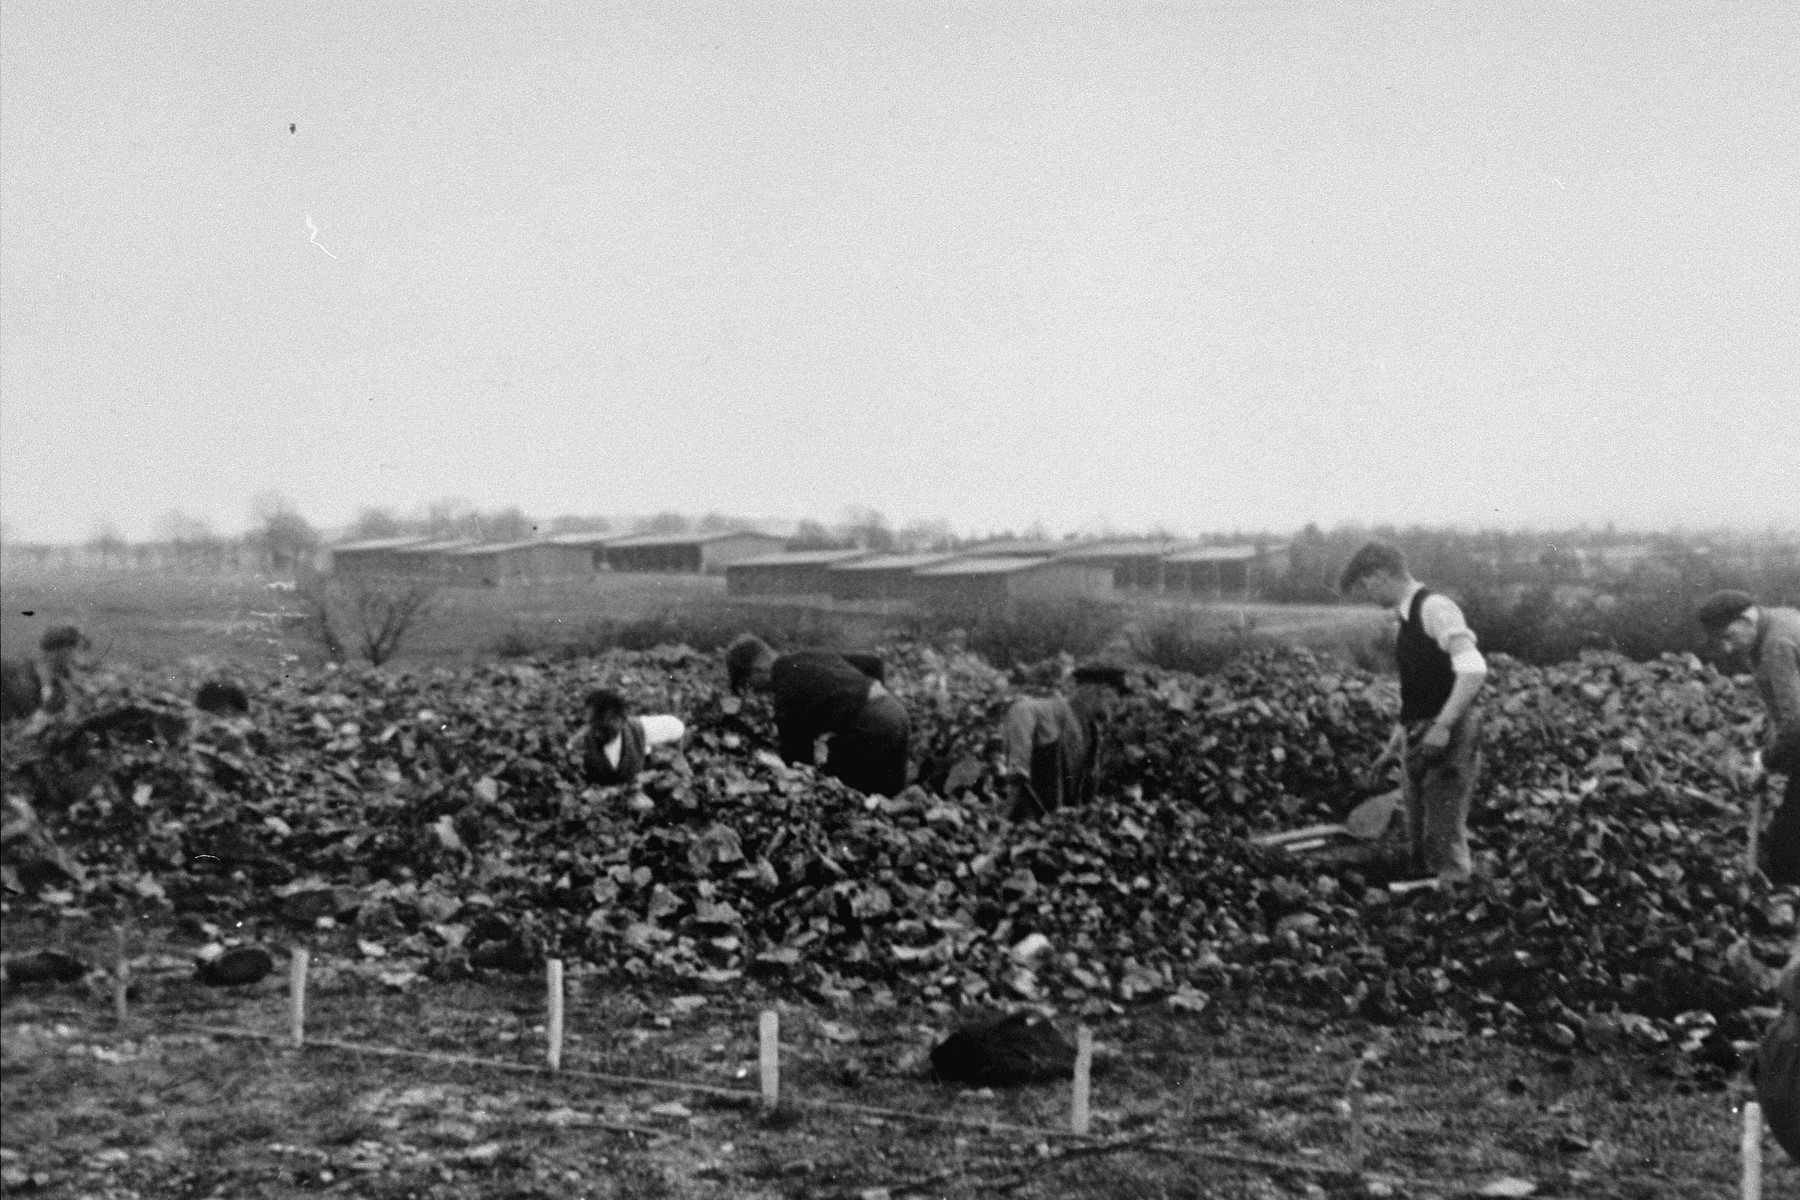 German civilians conscripted from nearby towns dig graves for corpses found in the Ohrdruf concentration camp, which is visible in the distance.